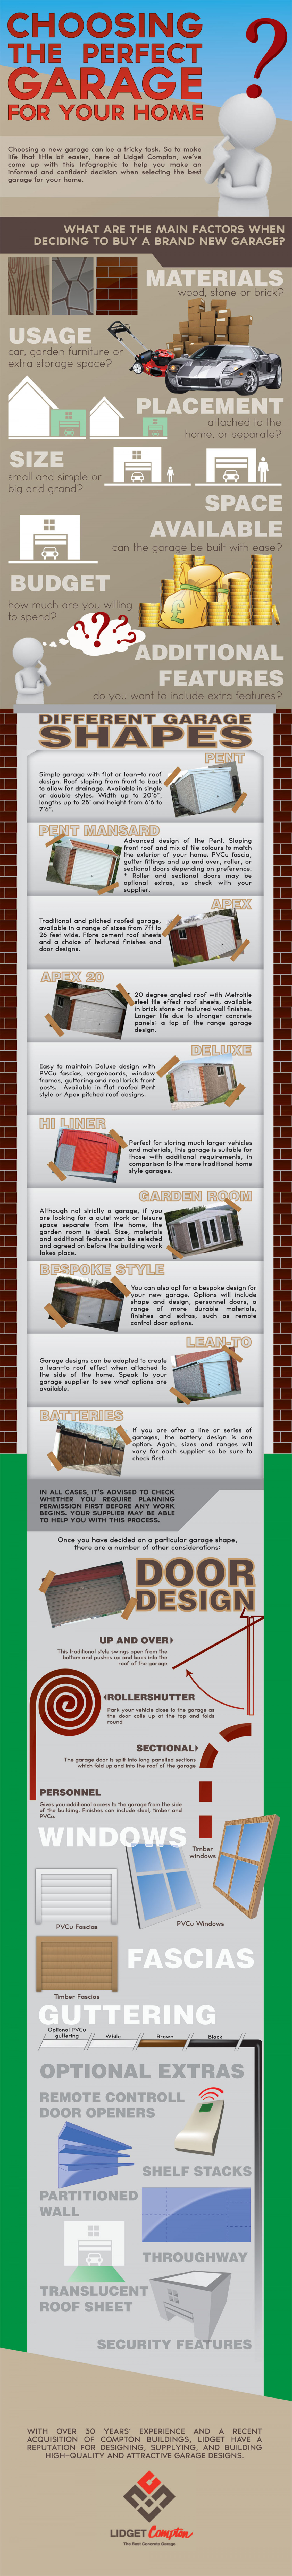 Choosing The Perfect Garage For Your Home Infographic